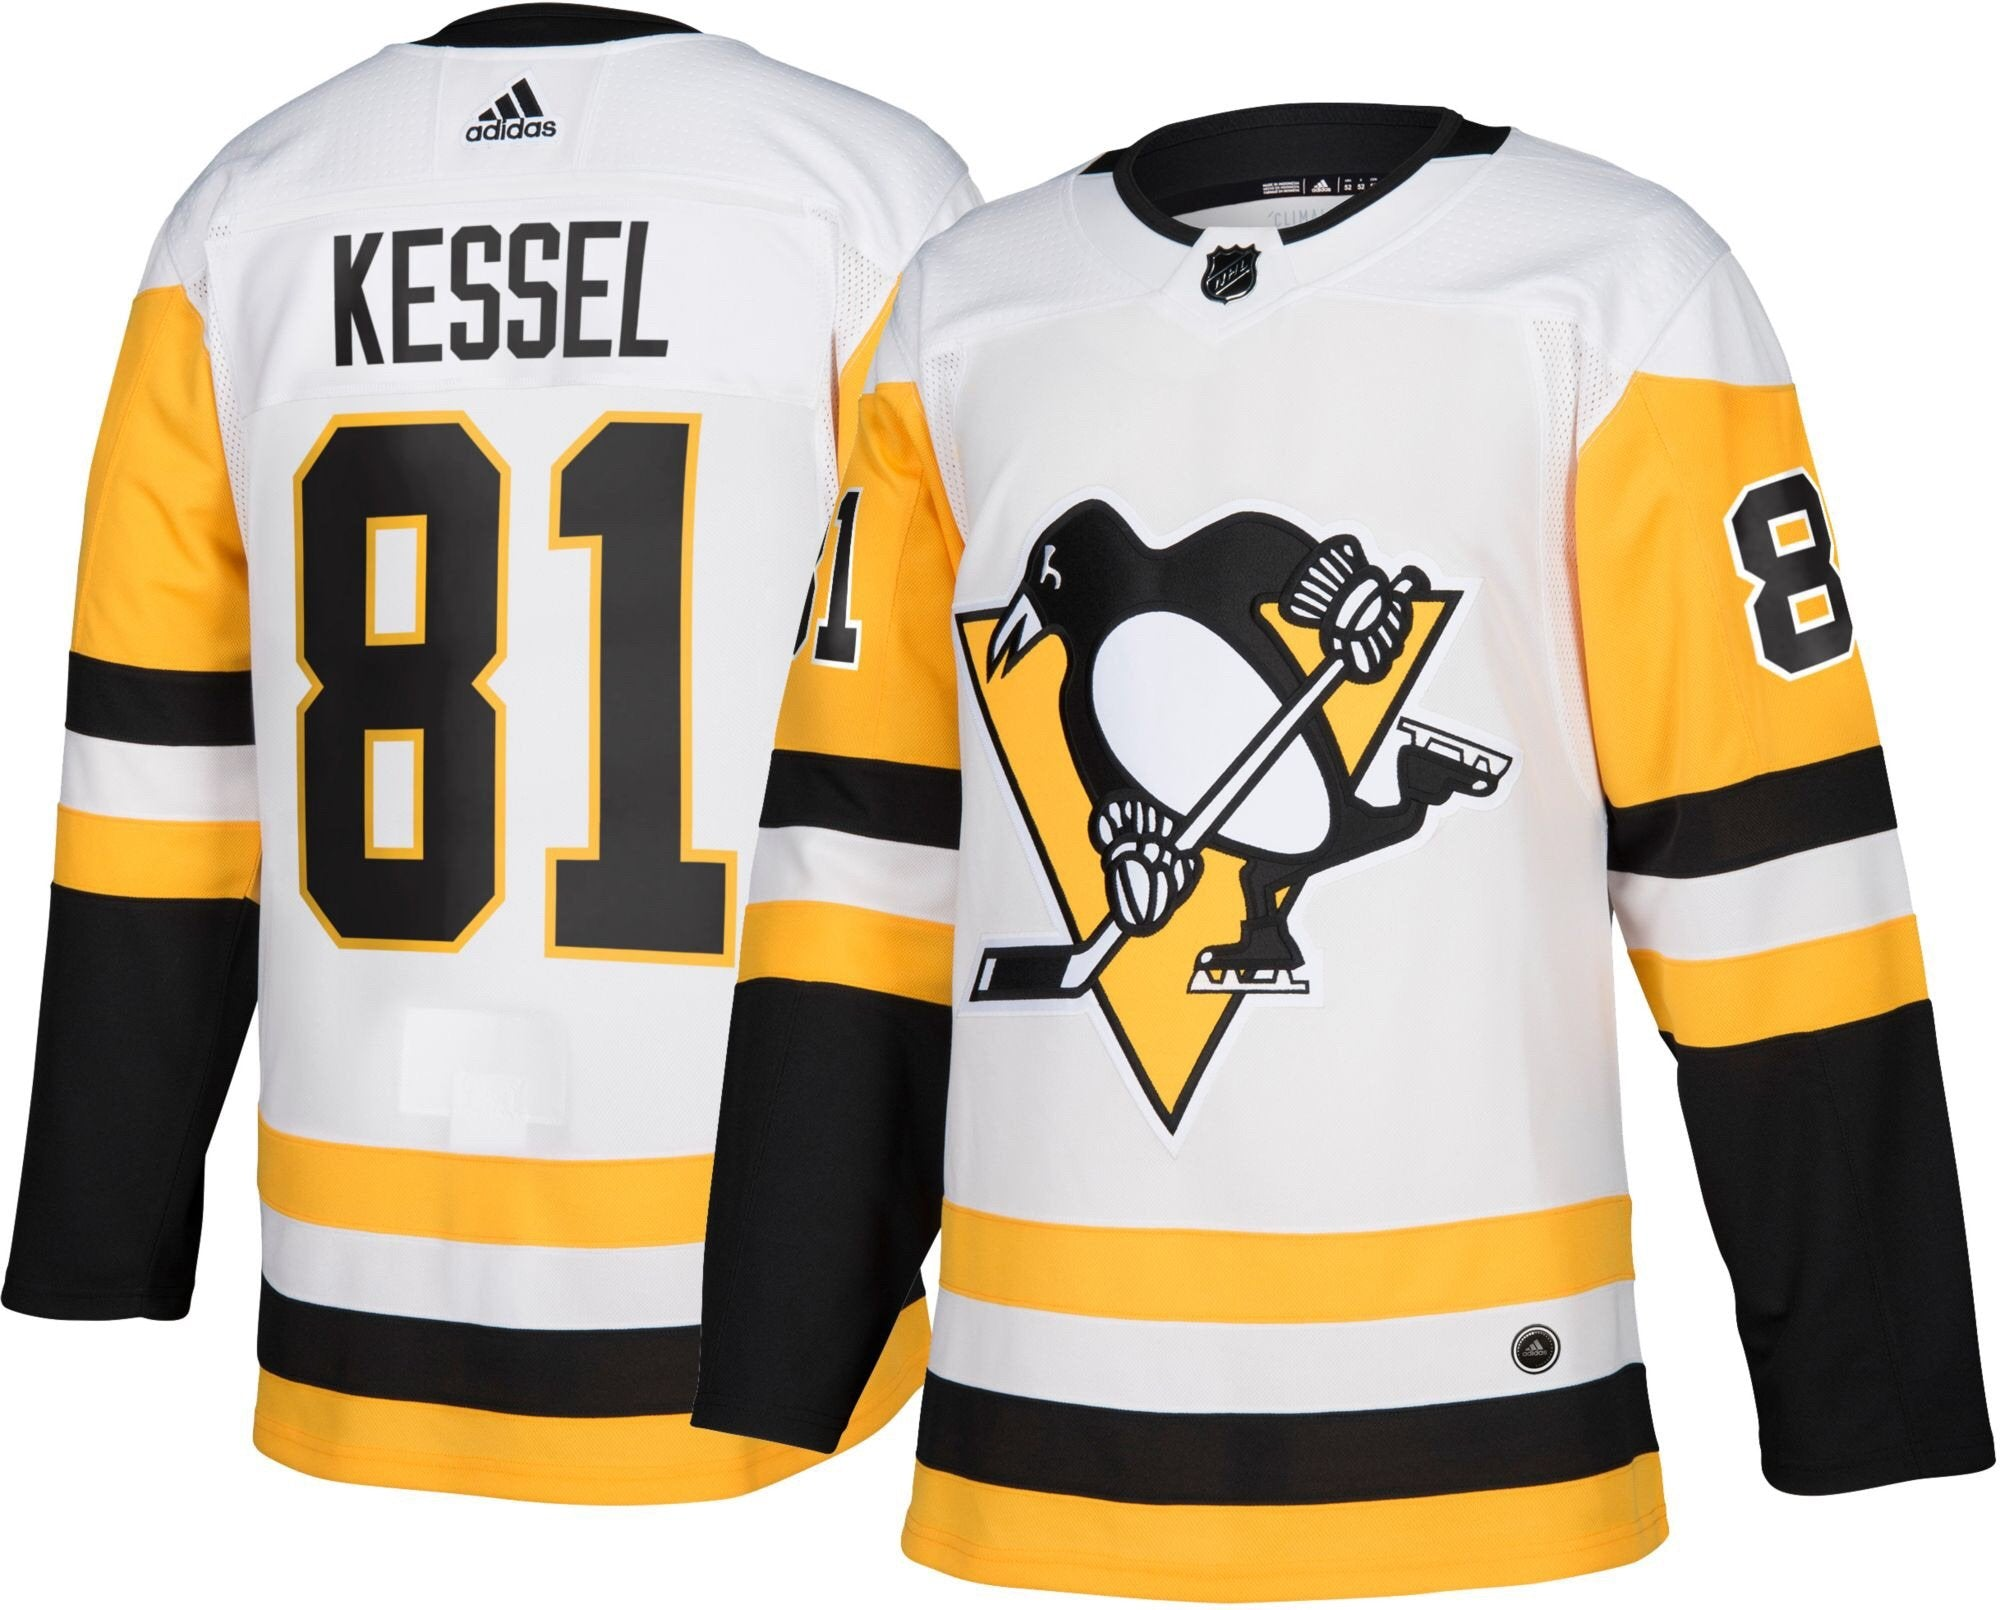 low priced 230bc 2420d PHIL KESSEL- PENGUINS REPLICA JERSEY